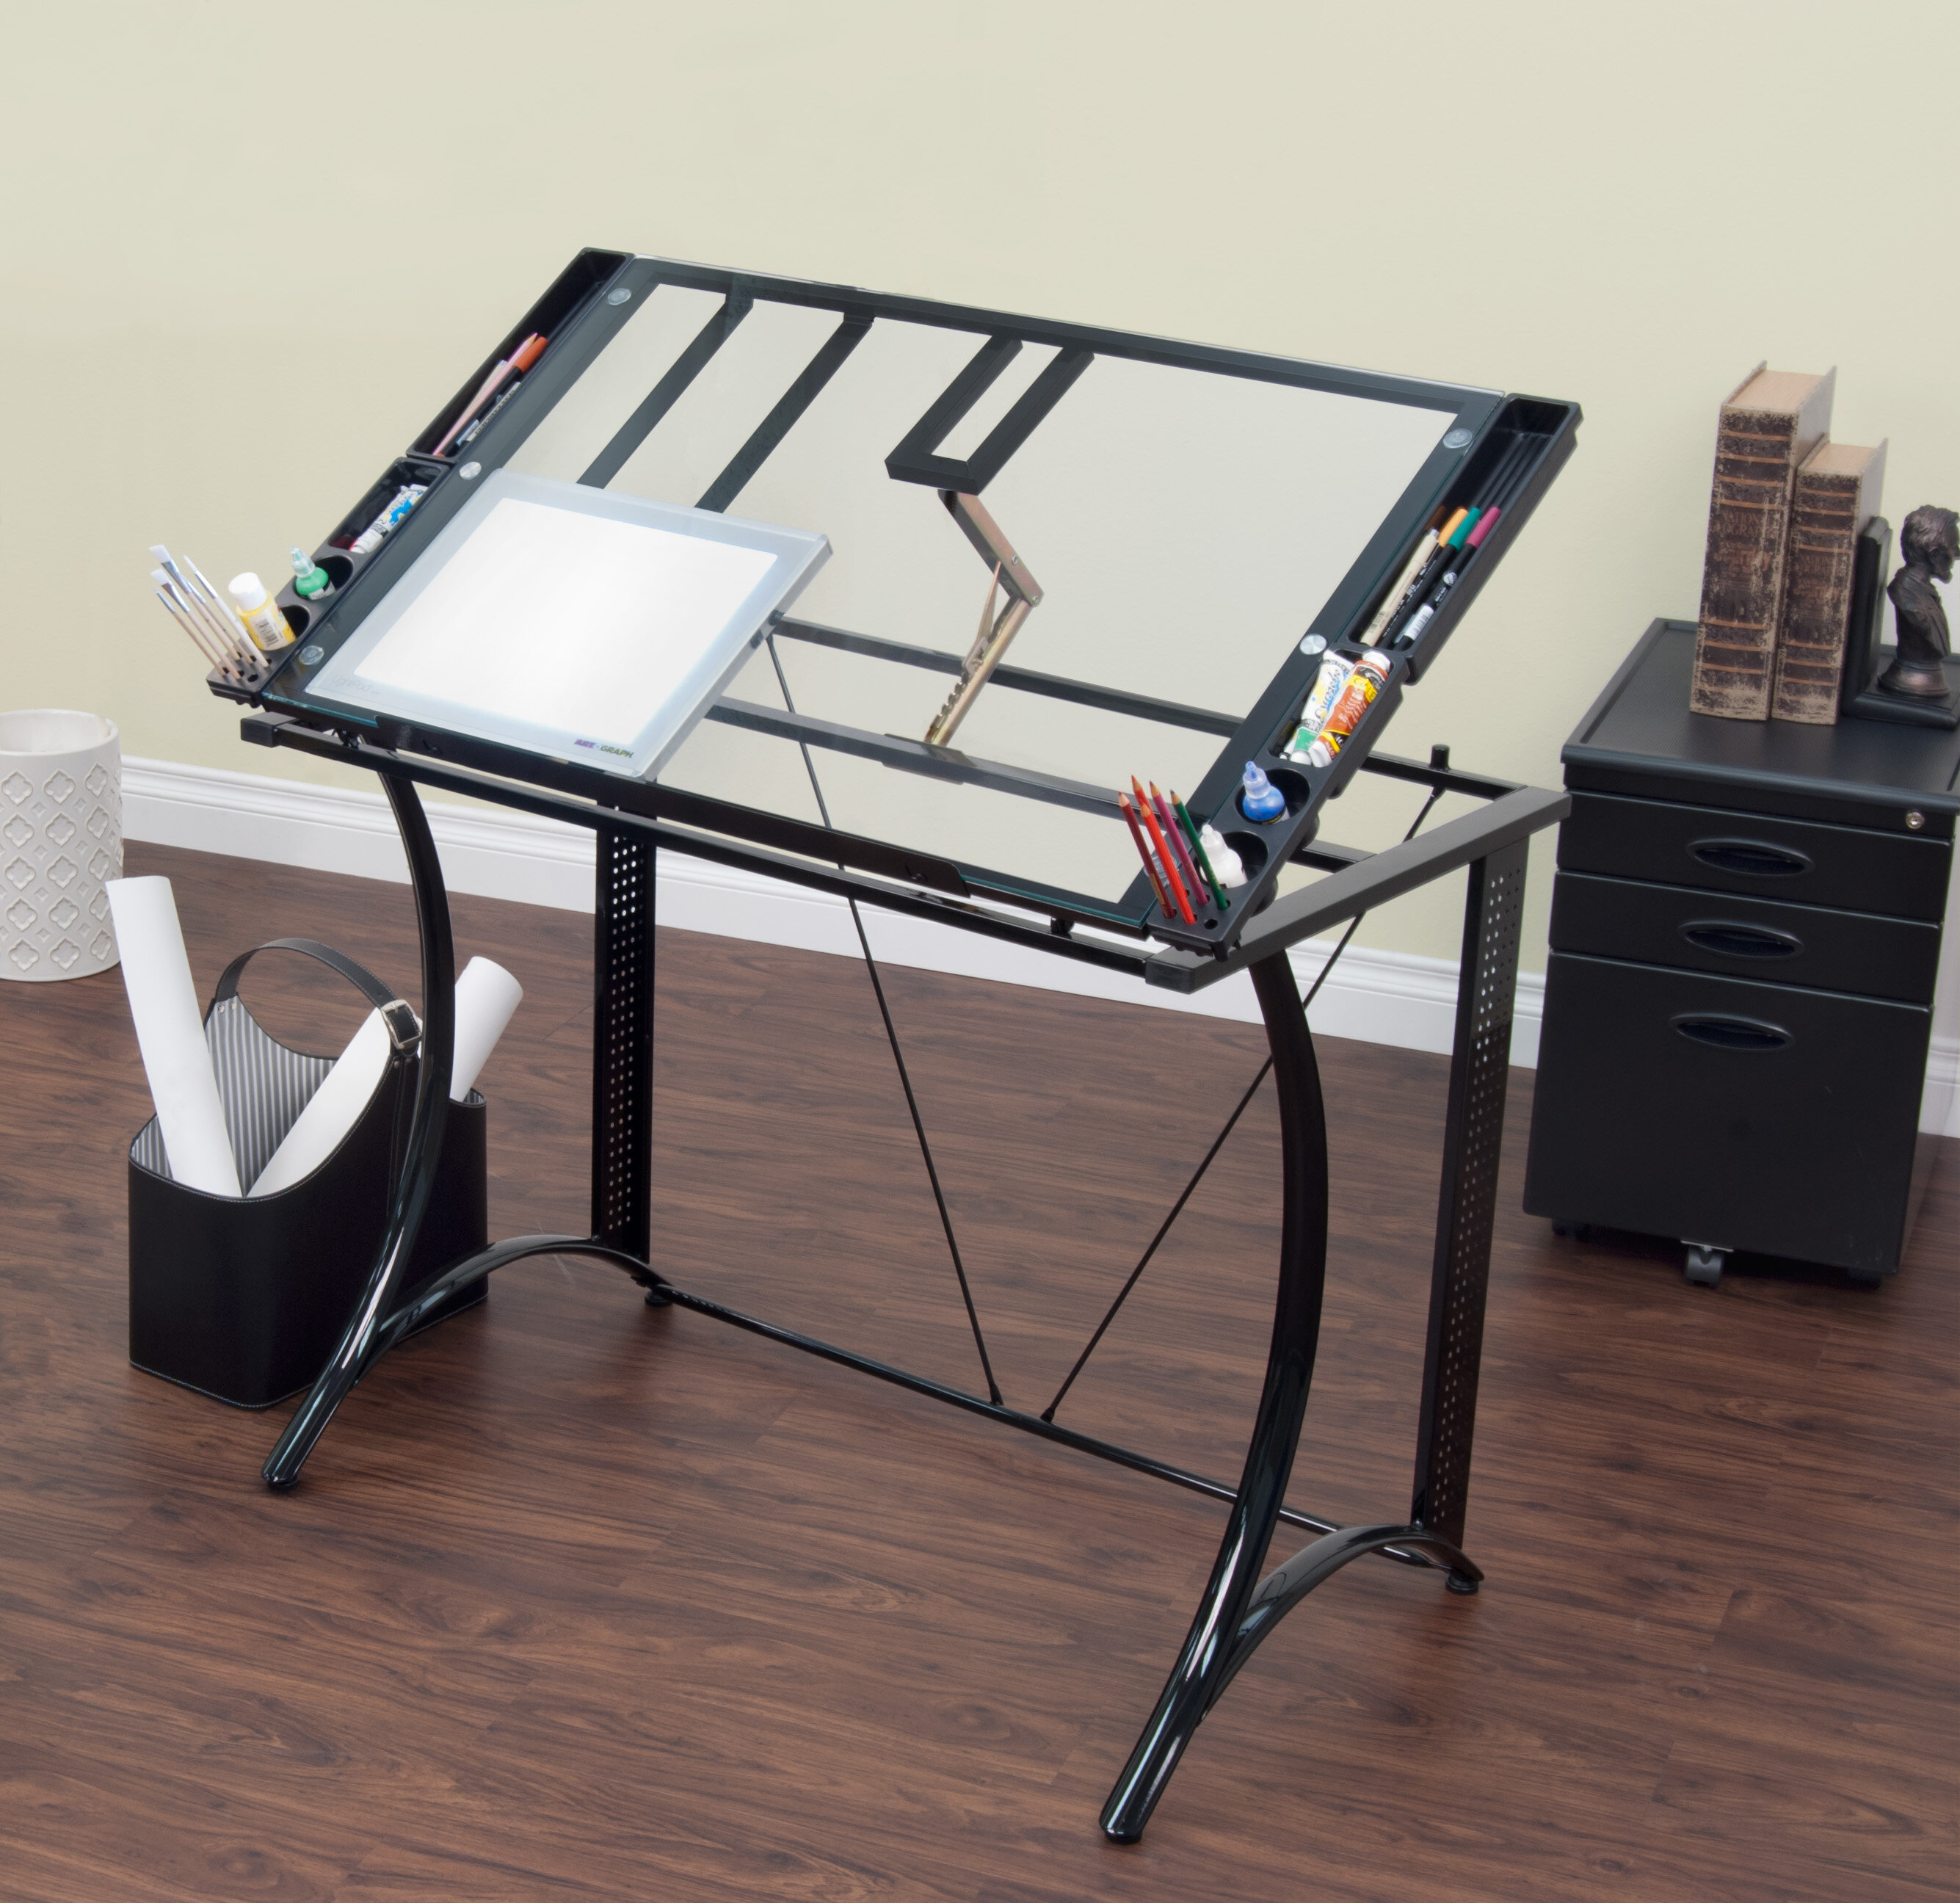 free at for badgerslair getdrawings top use personal drafting com table drawing